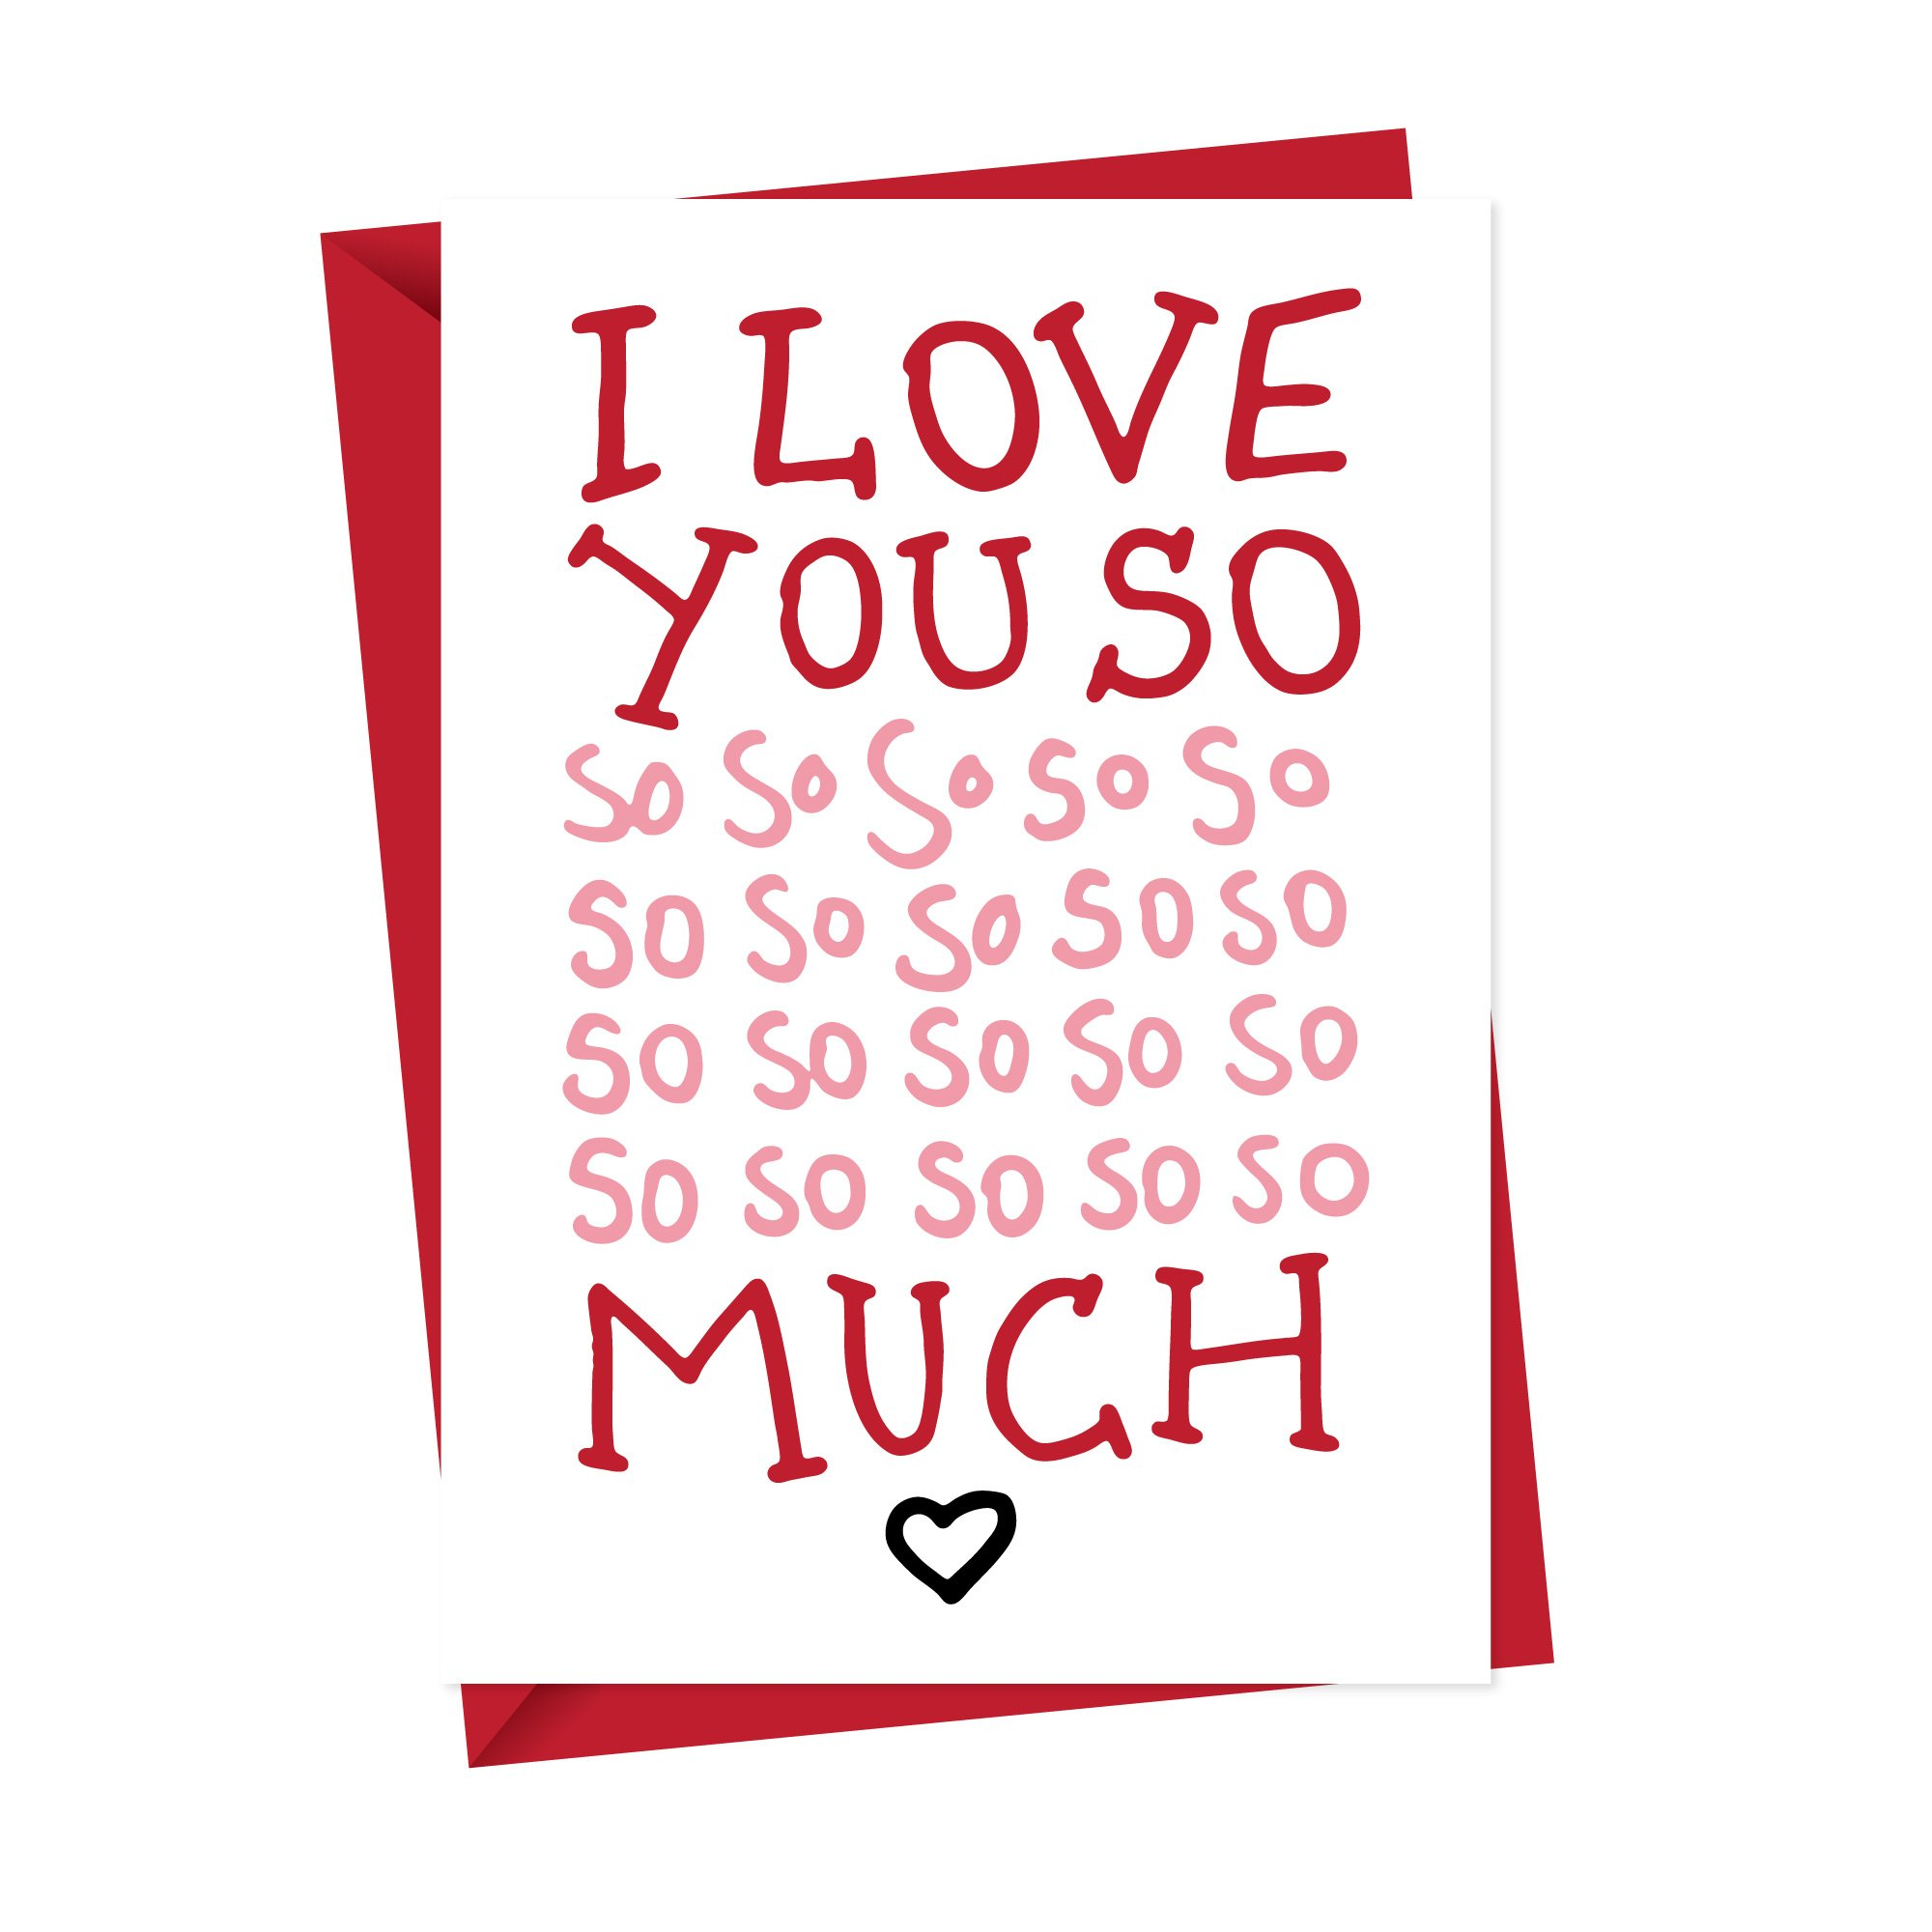 I love you so so much greeting card.jpg